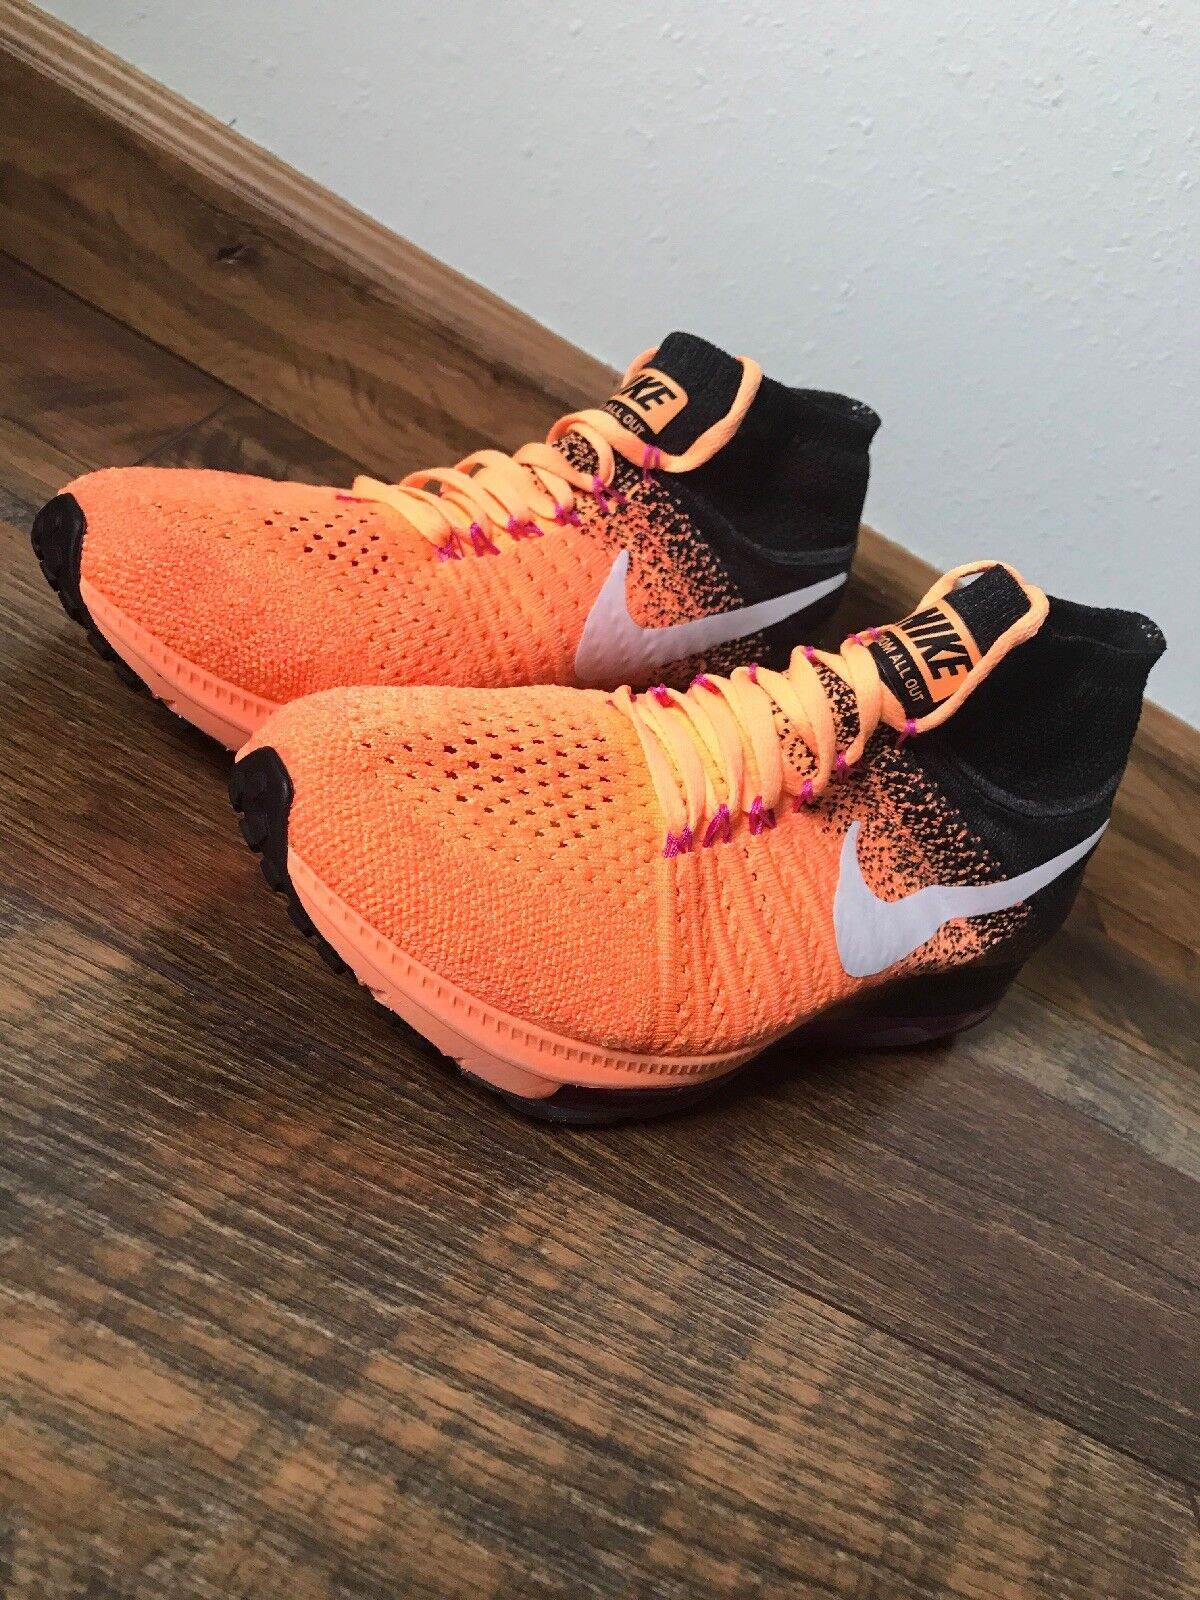 competitive price 44cda 58b05 NEW Nike Air Air Air Zoom All Out Flyknit shoes Women Sz 9.5 Peach Black  845361